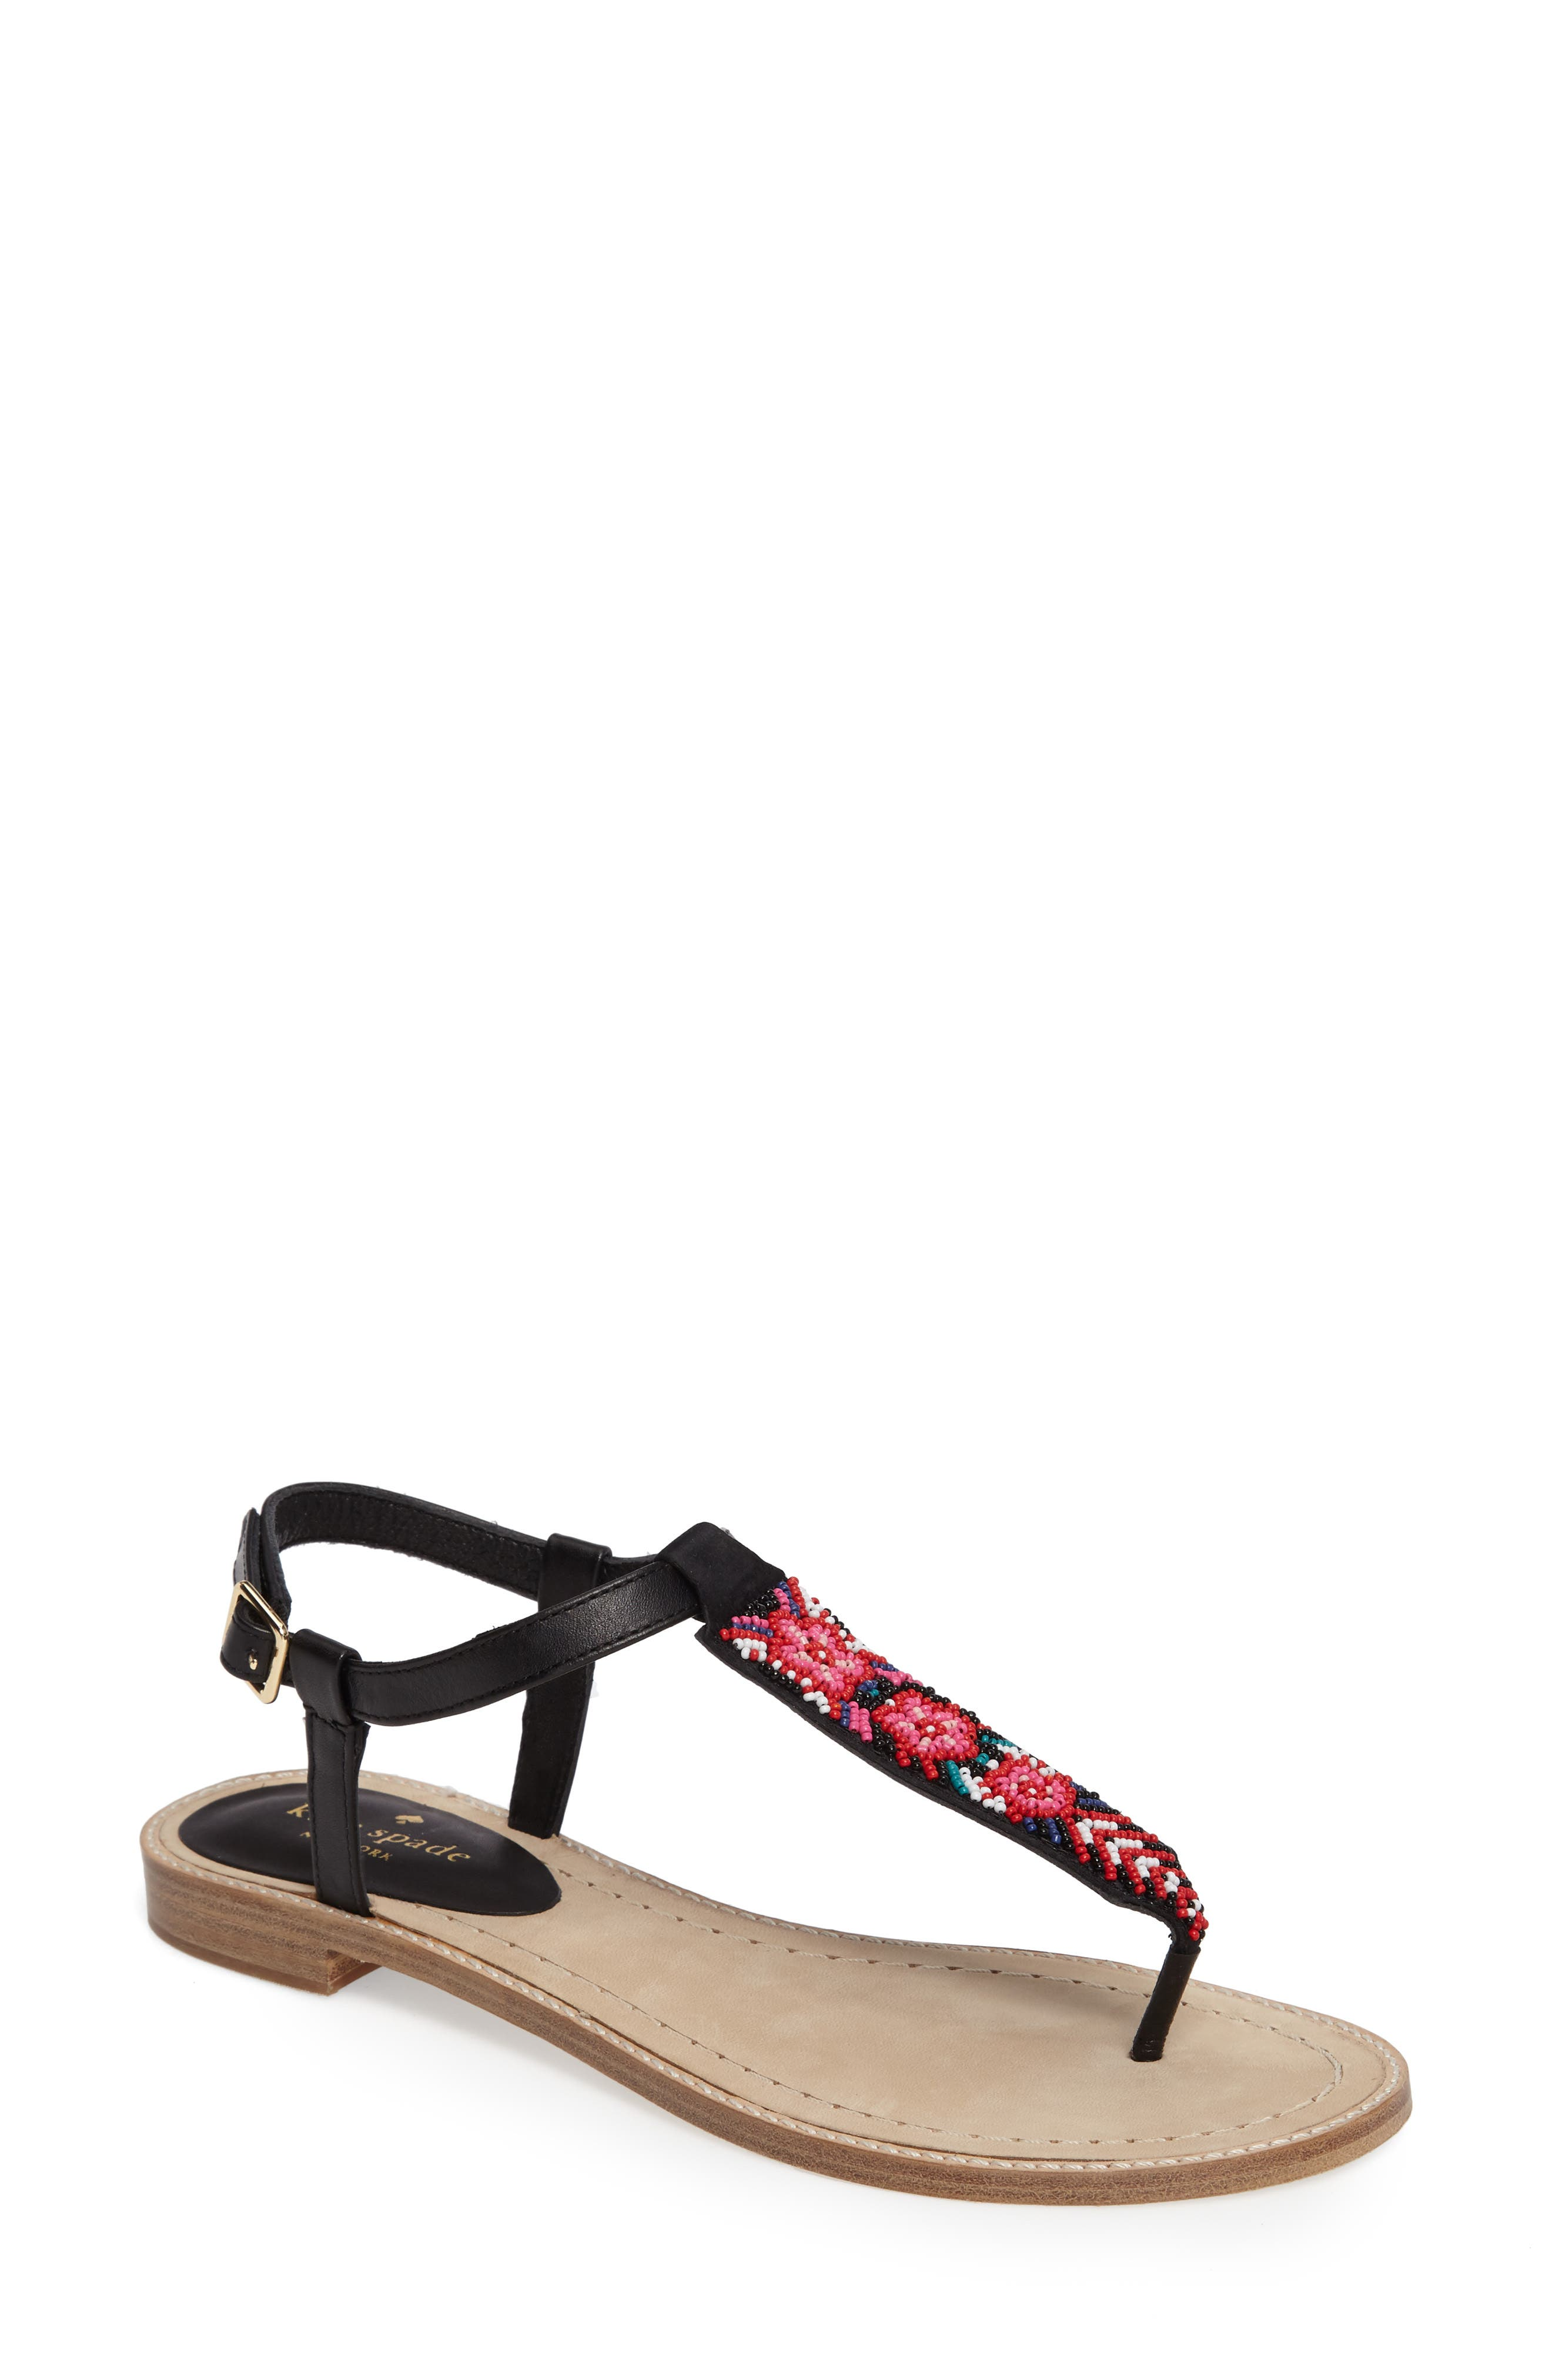 kate spade new york saborsa sandal (Women)